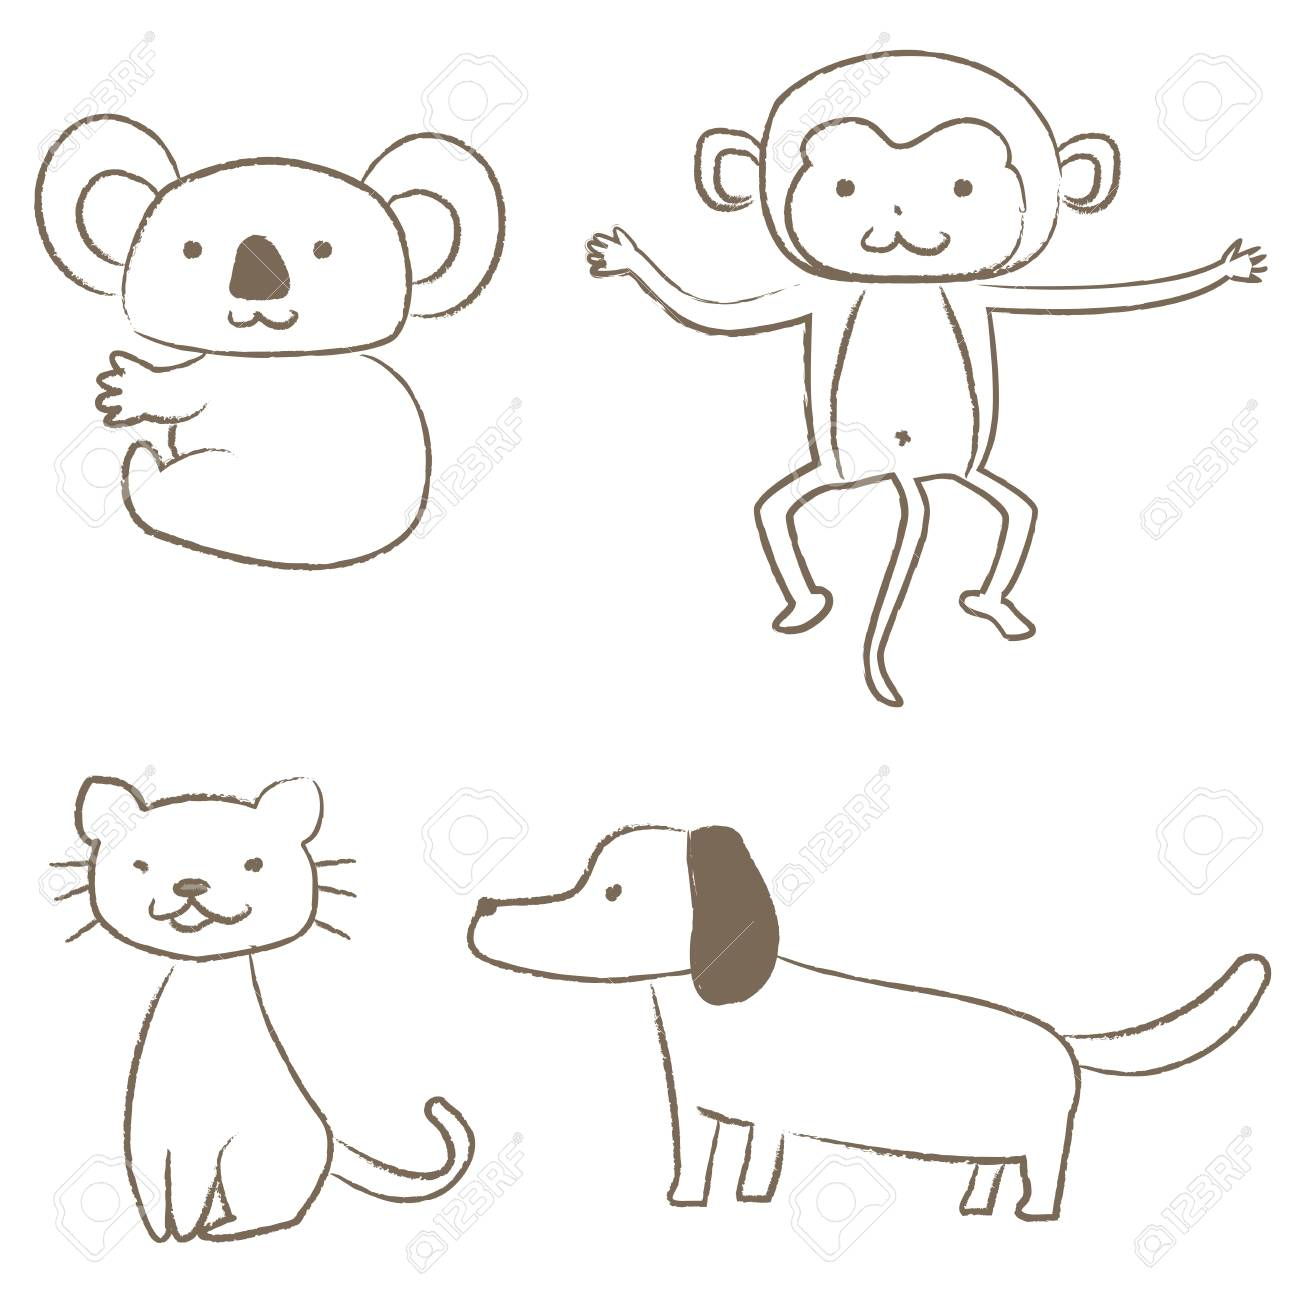 four animals drawn with